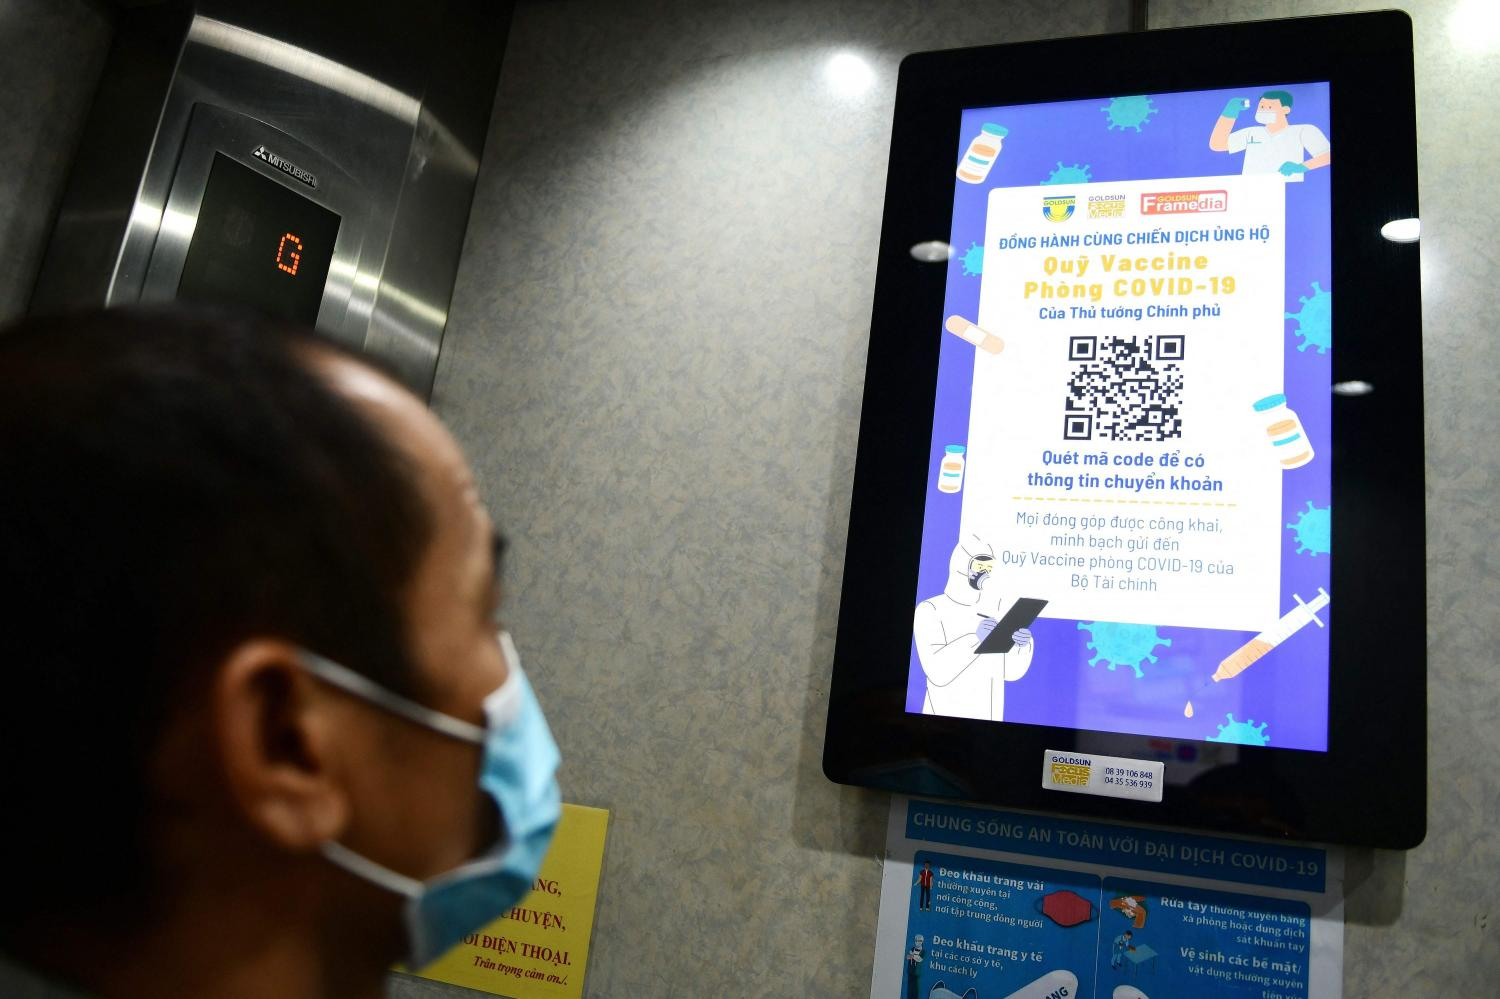 A man looks at a display screen in an elevator asking for public donations to Vietnam's national fund for a Covid-19 vaccine in Hanoi on June 8, as the country struggles to contain a new virus wave.(Photo: AFP)